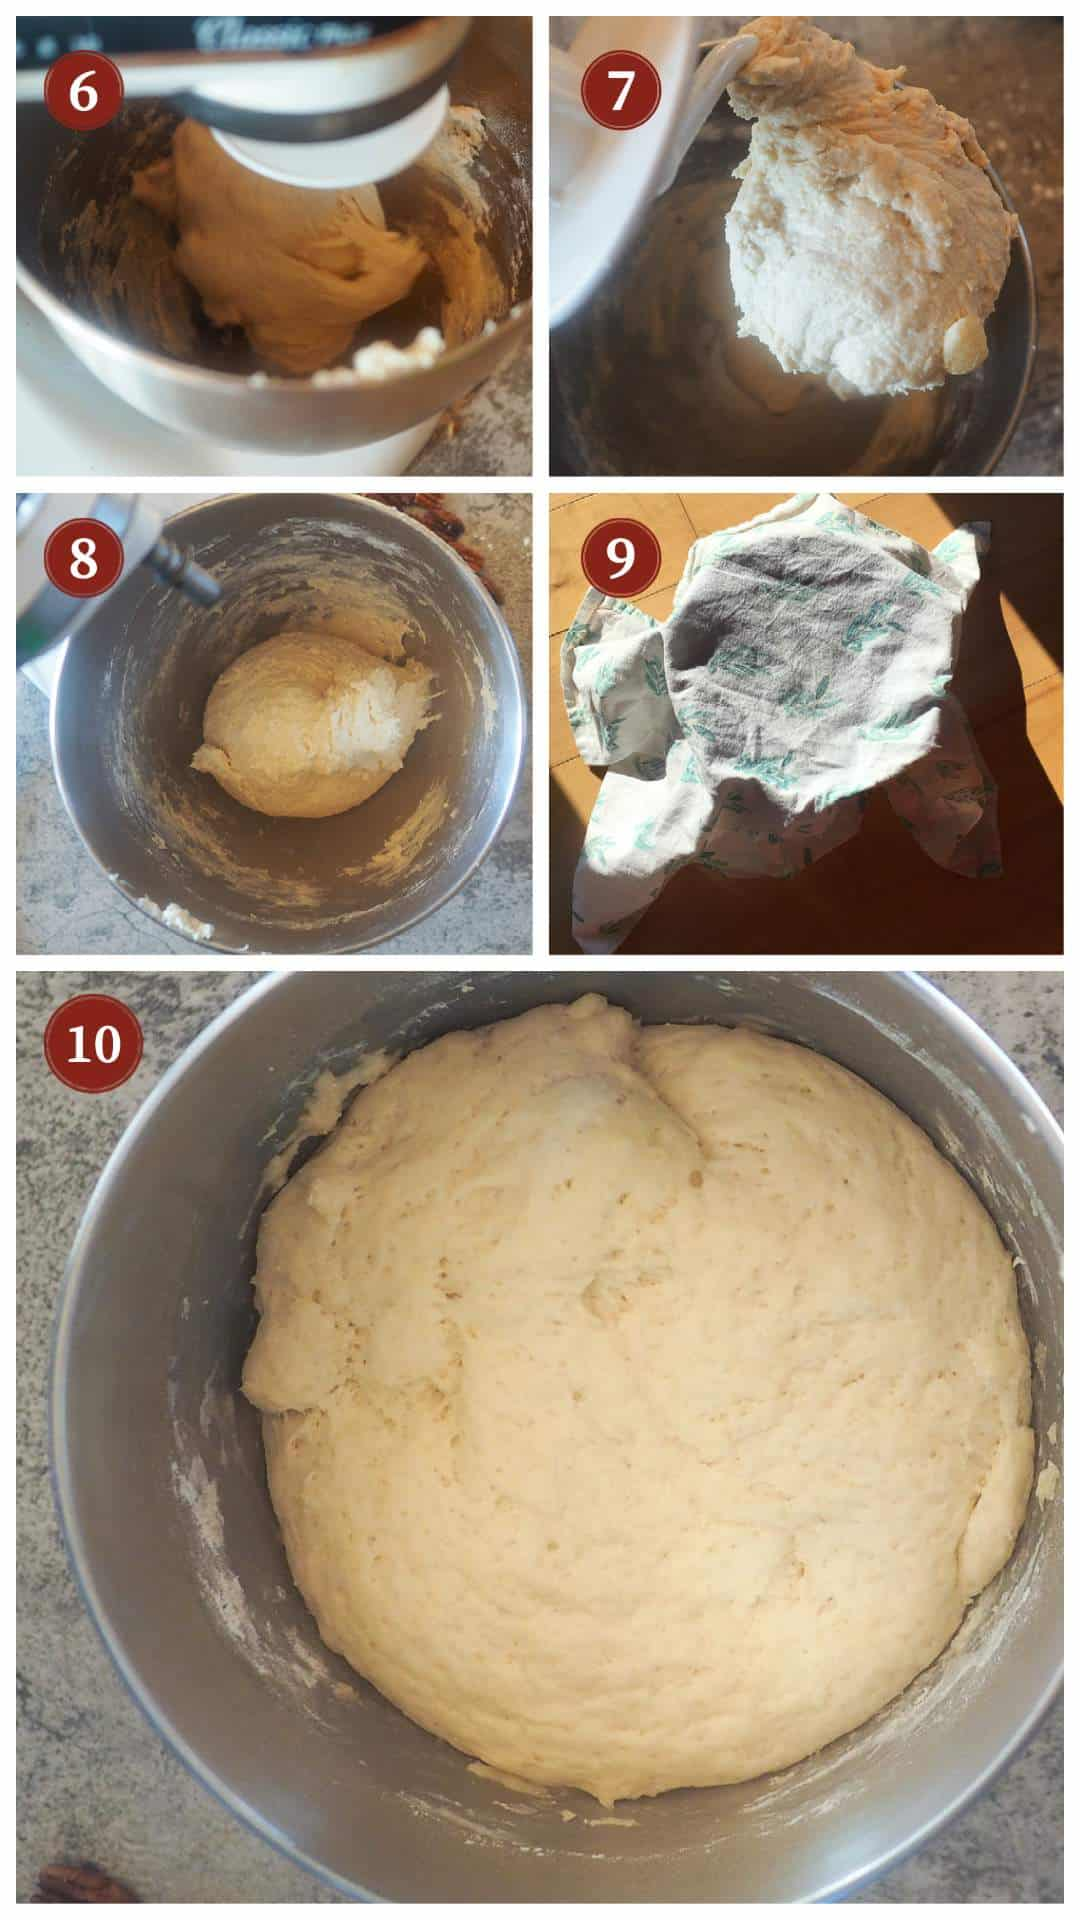 A collage of images showing how to make cinnamon roll dough, steps 6 - 10.